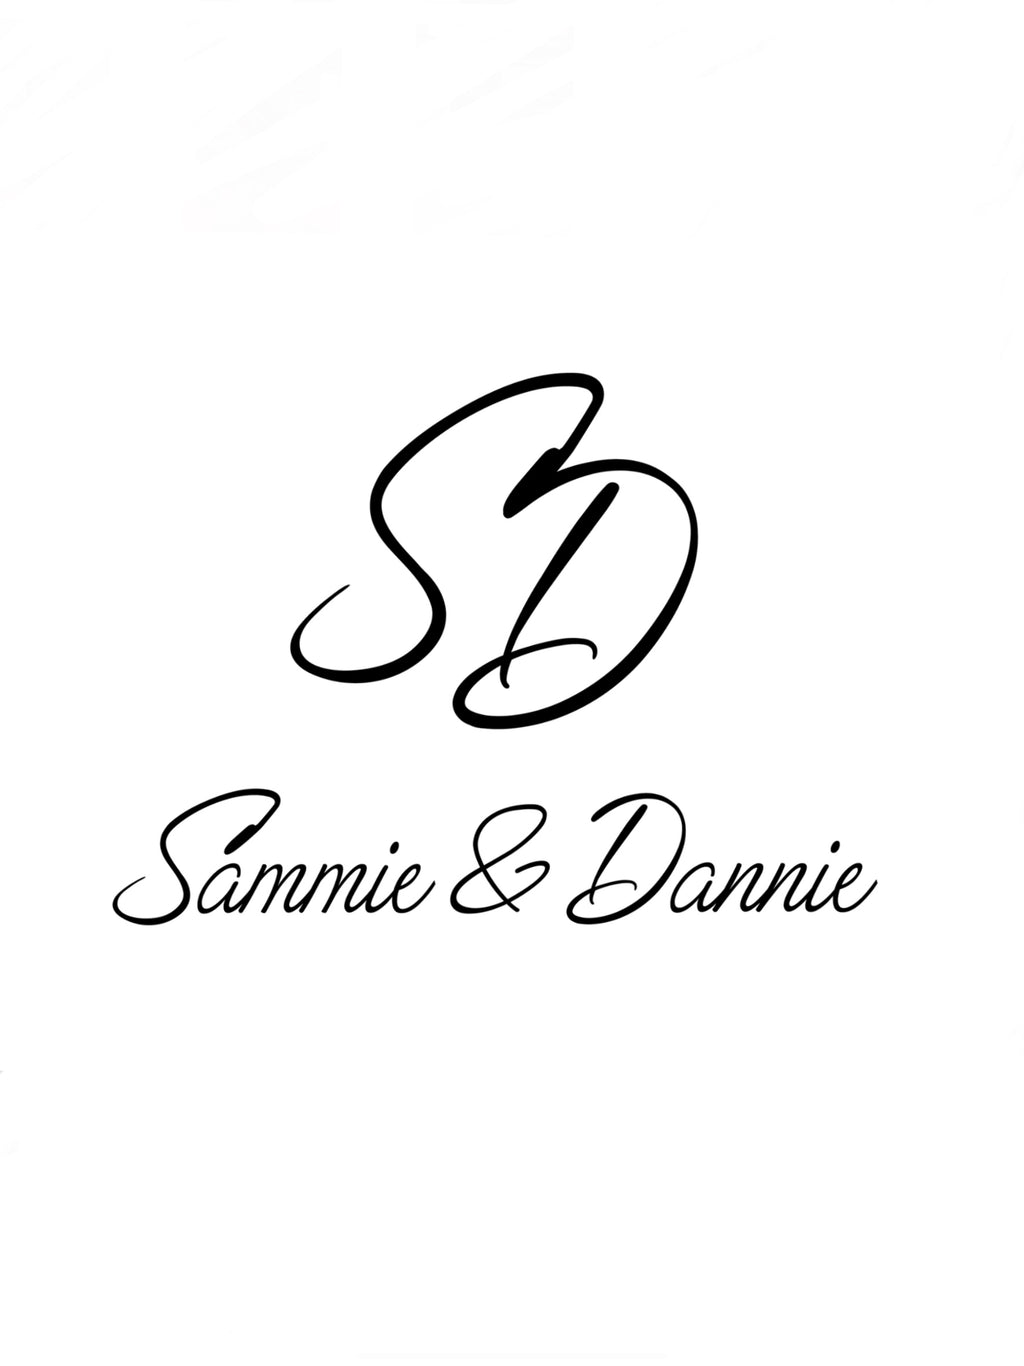 Sammie & Dannie Gift Card